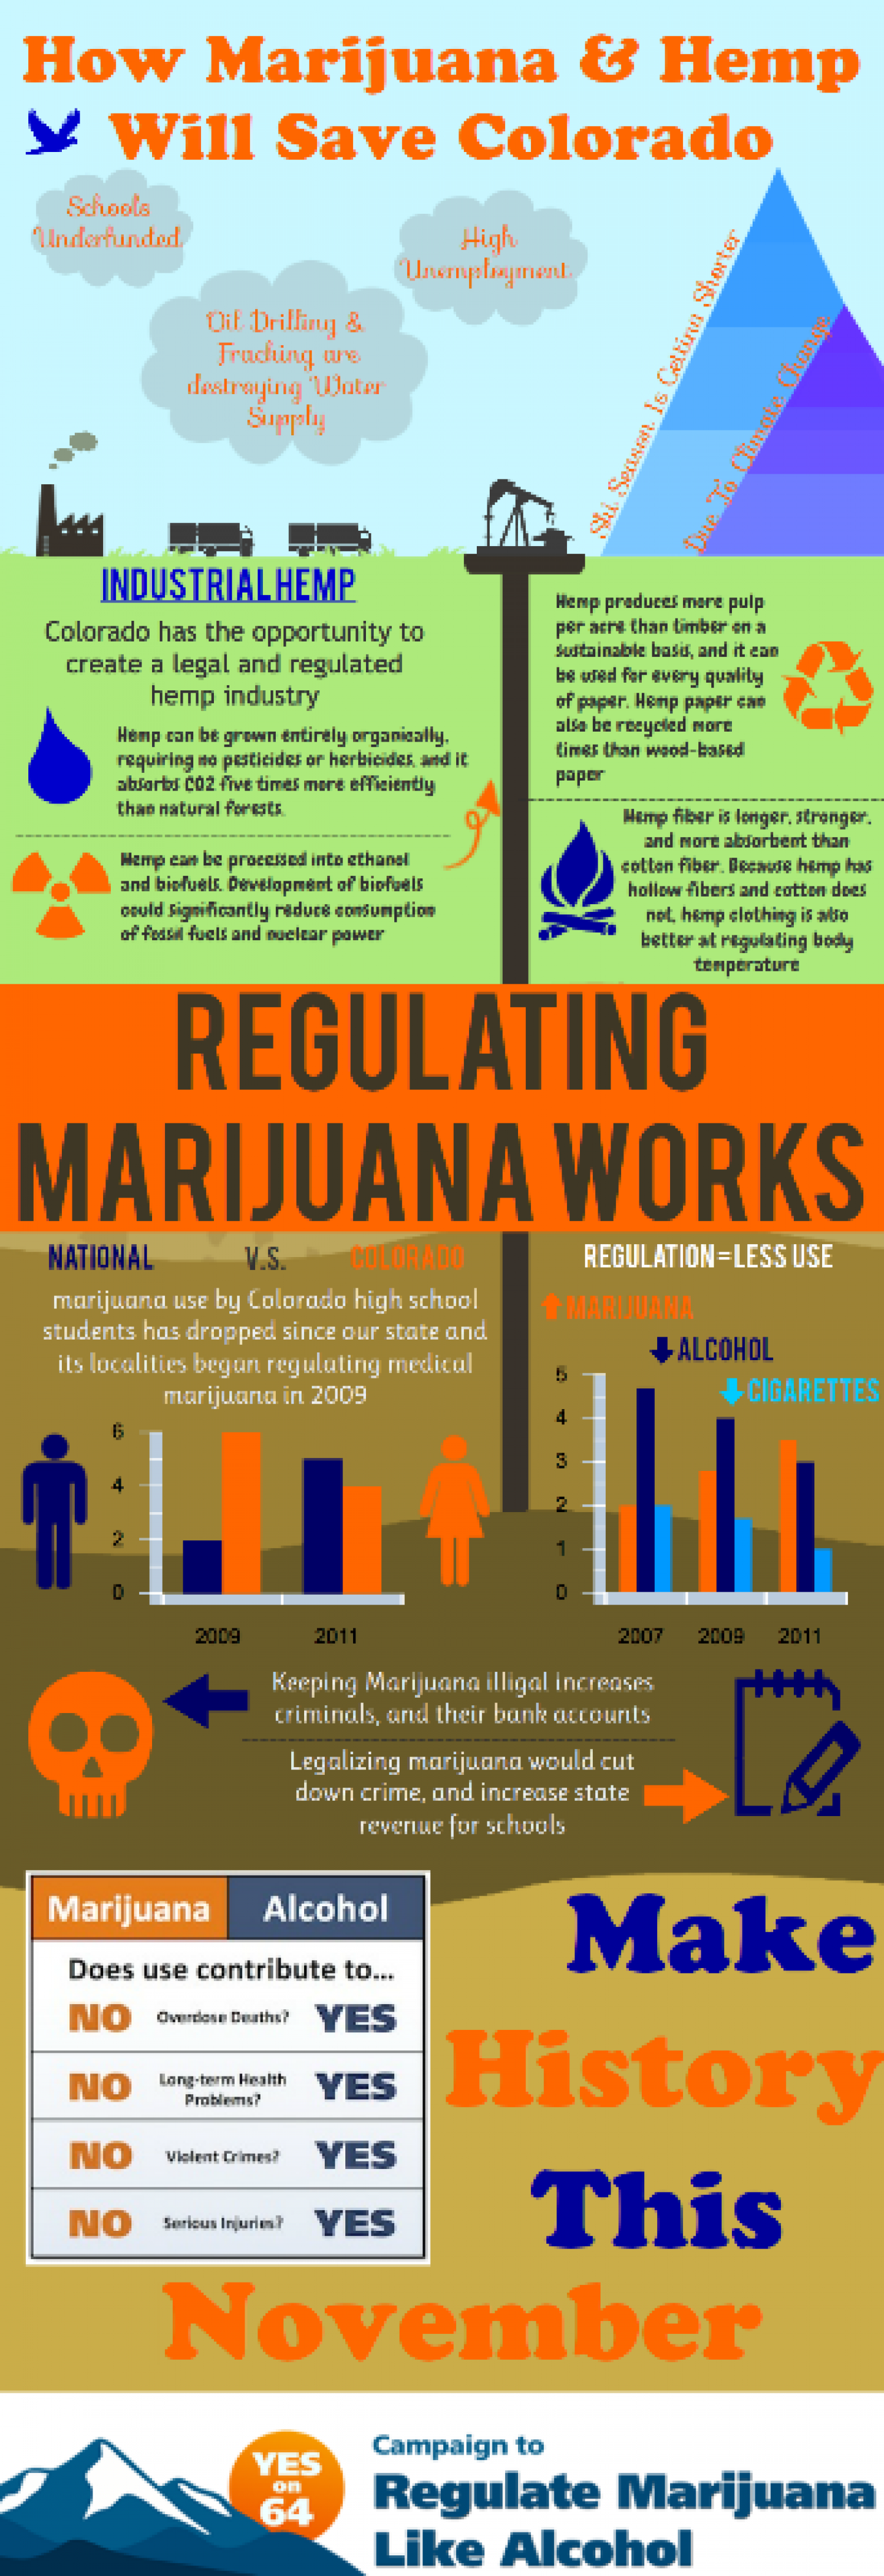 How Marijuana and Hemp Will Save Colorado Infographic